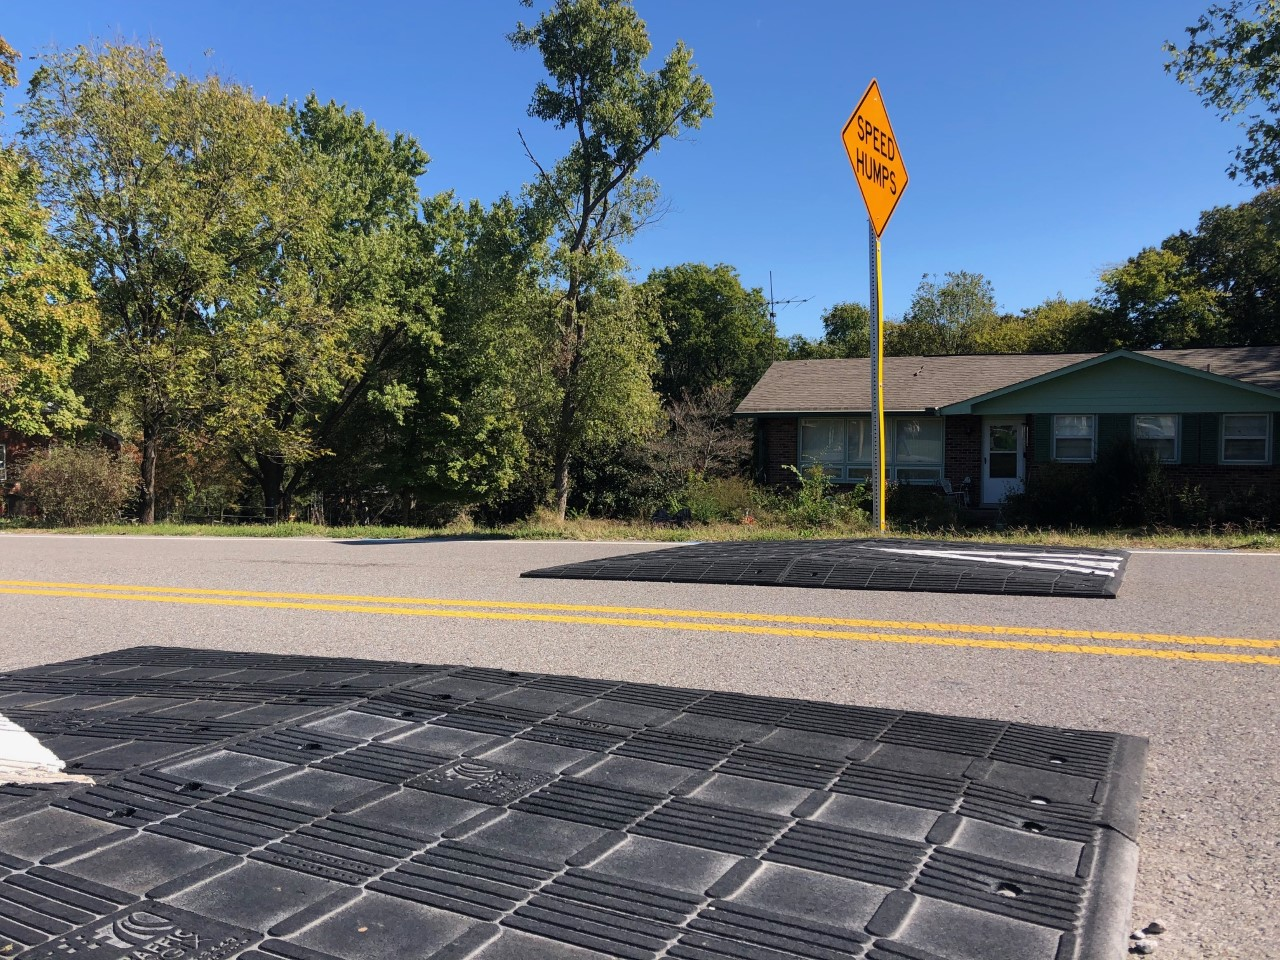 New speed hump along East Ridge Dr.